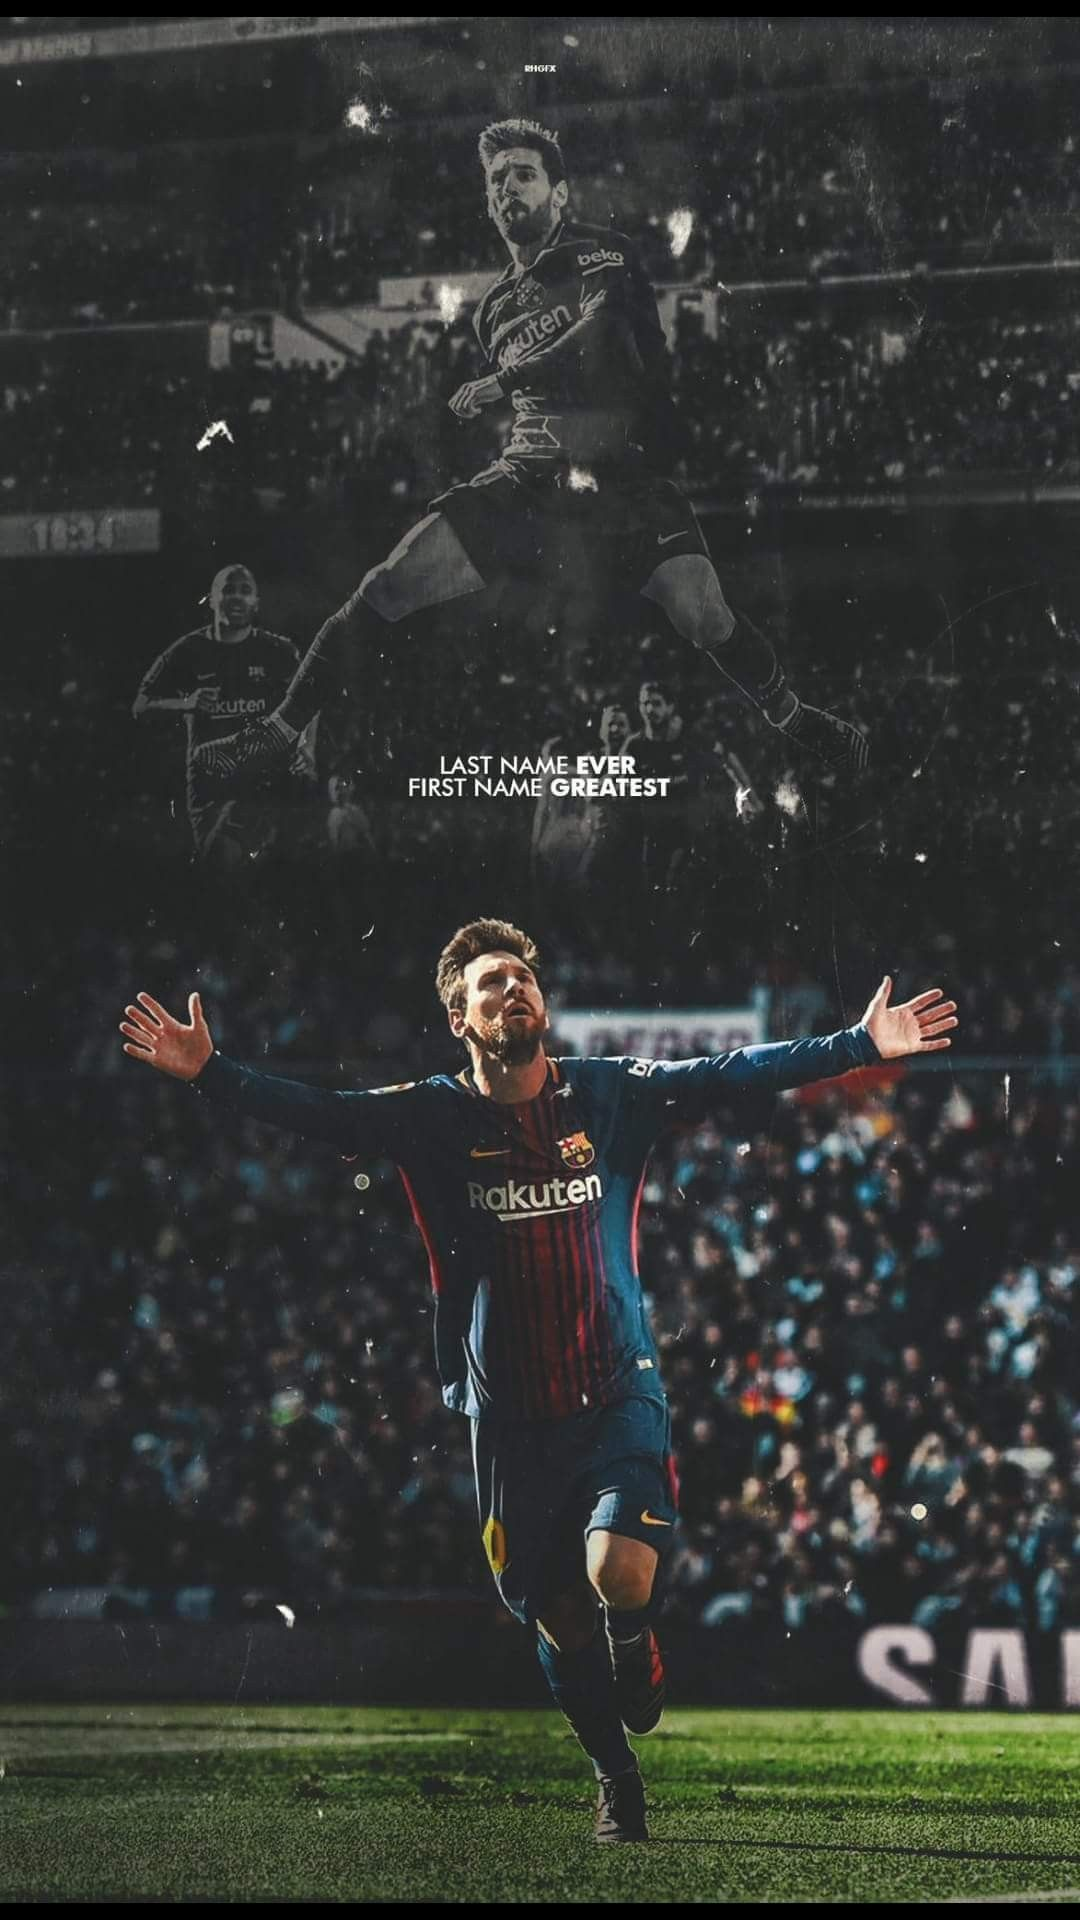 Messi Wallpaper 4k Posted By Sarah Tremblay